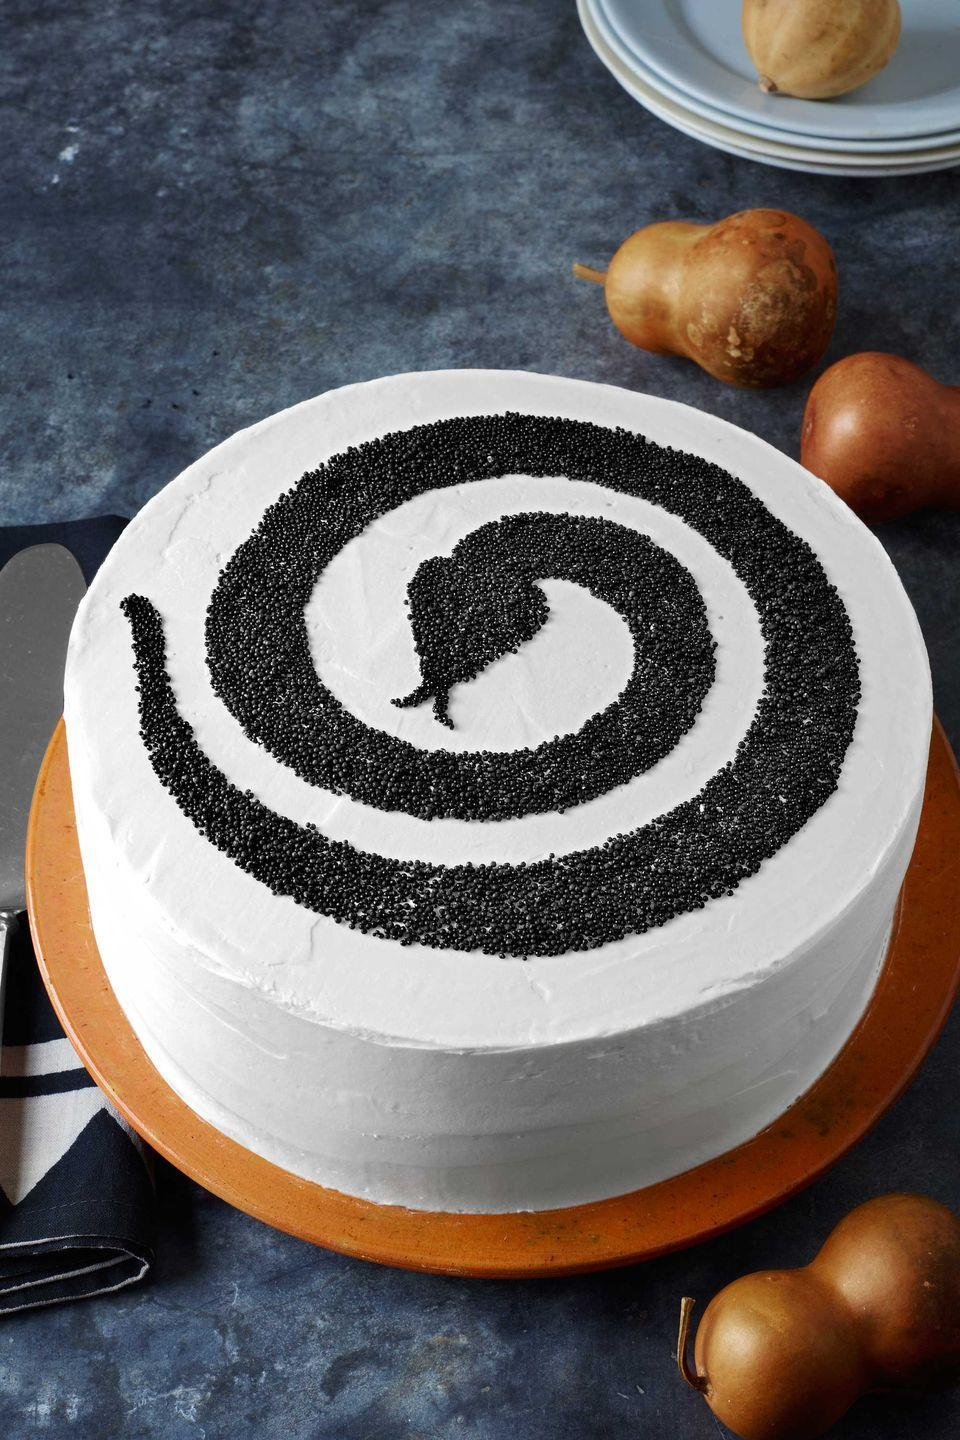 """<p>Give a round cake real bite with our <a href=""""http://clv.h-cdn.co/assets/cm/15/24/5578bab00b517_-_1013-snakecakeart.pdf"""" rel=""""nofollow noopener"""" target=""""_blank"""" data-ylk=""""slk:snake template"""" class=""""link rapid-noclick-resp"""">snake template</a> and black nonpareils<em>. </em></p><p><strong>Step 1: </strong>Prepare your favorite cake recipe and bake in two 9-inch round cake pans. Let the cakes cool completely.<br></p><p><strong>Step 2: </strong>Cut the tops off each cake and frost one of the tops with store bought or homemade buttercream. Place bare cake on top of the frosted top. Frost both cakes together.</p><p><strong>Step 3: </strong>Print the template; place your printout beneath a sheet of parchment and trace the snake design. Cut parchment as indicated on the template to create a stencil.</p><p><strong>Step 4: </strong>Place the cake stencil on top of the two cakes. Fill stencil with nonpareils. Chill cake for 15 to 20 minutes.</p><p><strong><a href=""""https://www.countryliving.com/food-drinks/g217/basic-vanilla-and-chocolate-cake-recipes/"""" rel=""""nofollow noopener"""" target=""""_blank"""" data-ylk=""""slk:Get a cake recipe"""" class=""""link rapid-noclick-resp"""">Get a cake recipe</a>.</strong> </p><p><strong><a href=""""https://www.countryliving.com/food-drinks/recipes/a1568/circus-tent-frosting-3678/"""" rel=""""nofollow noopener"""" target=""""_blank"""" data-ylk=""""slk:Get the recipe for homemade buttercream"""" class=""""link rapid-noclick-resp"""">Get the recipe for homemade buttercream</a>.</strong></p>"""